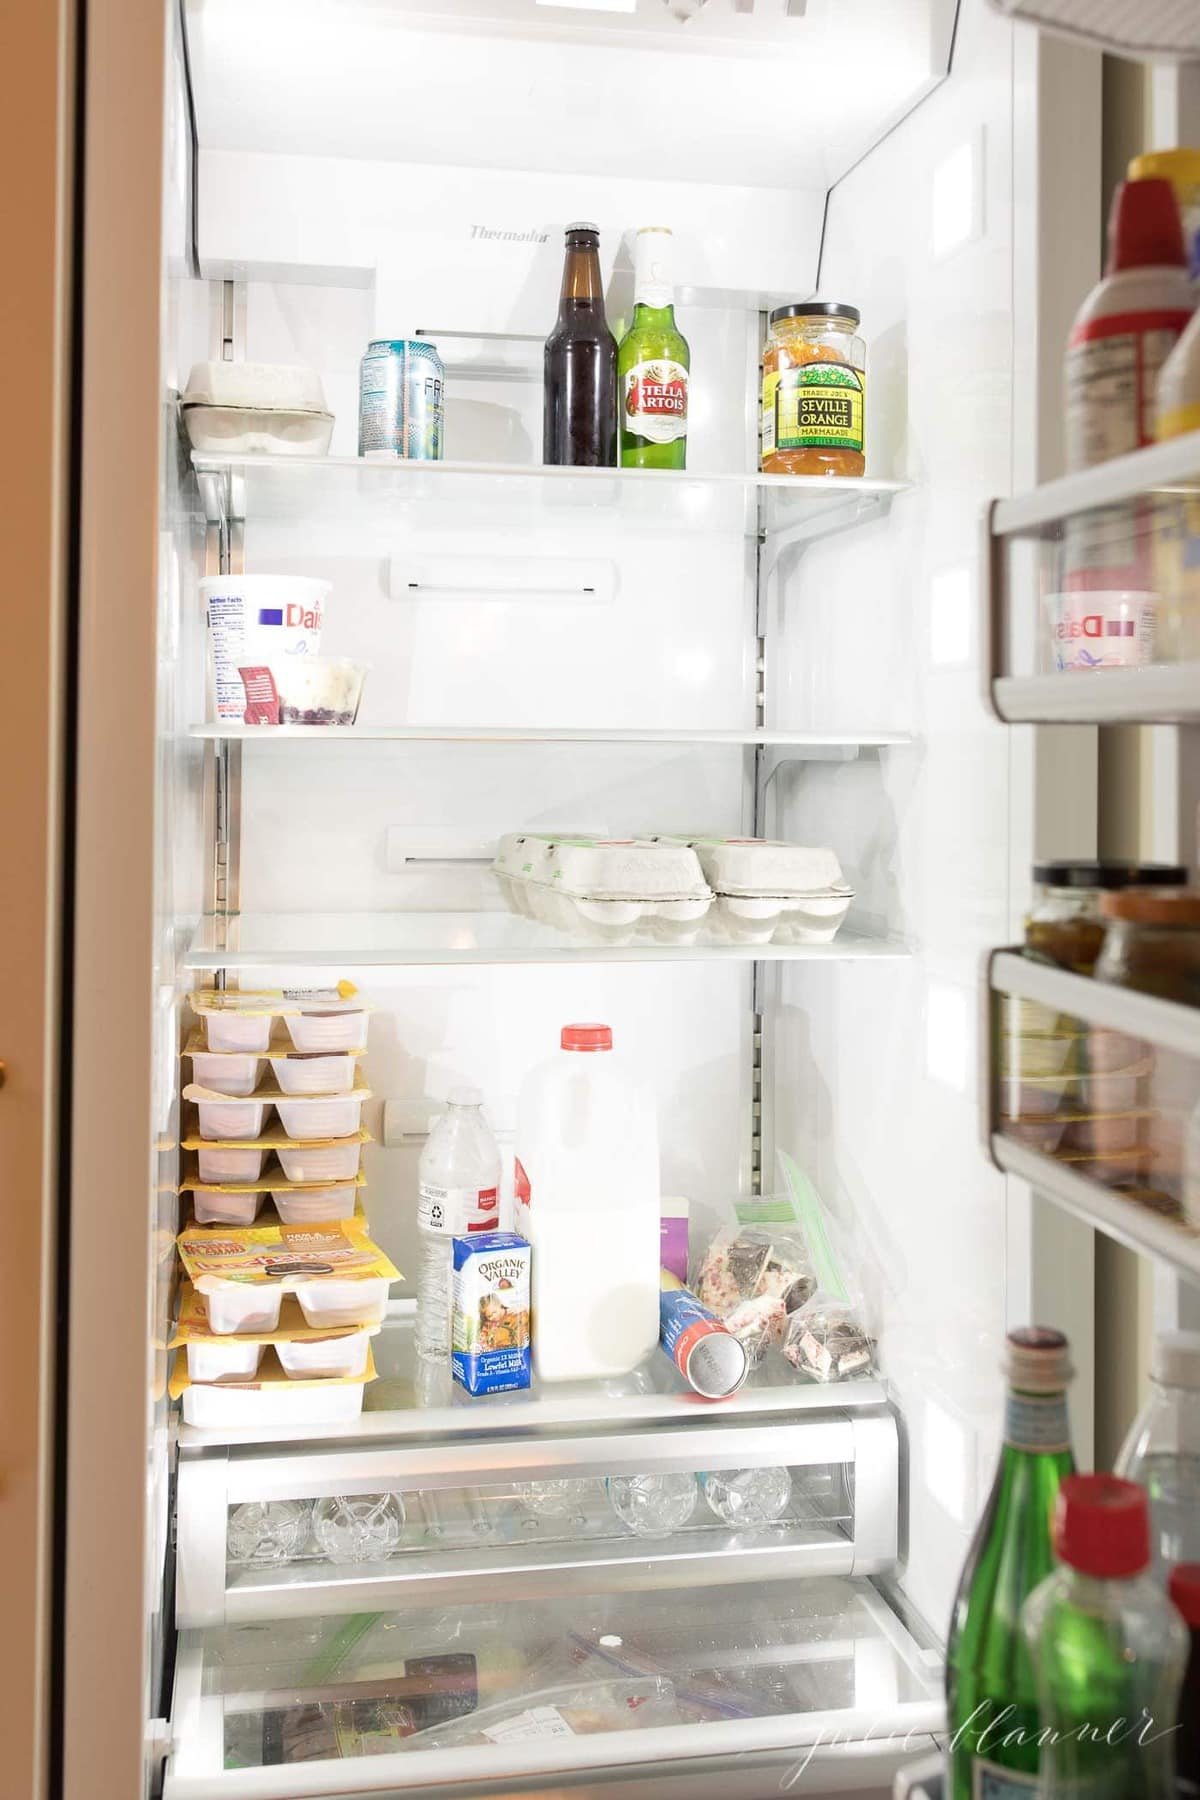 unorganized refrigerator BEFORE using fridge organization containers.